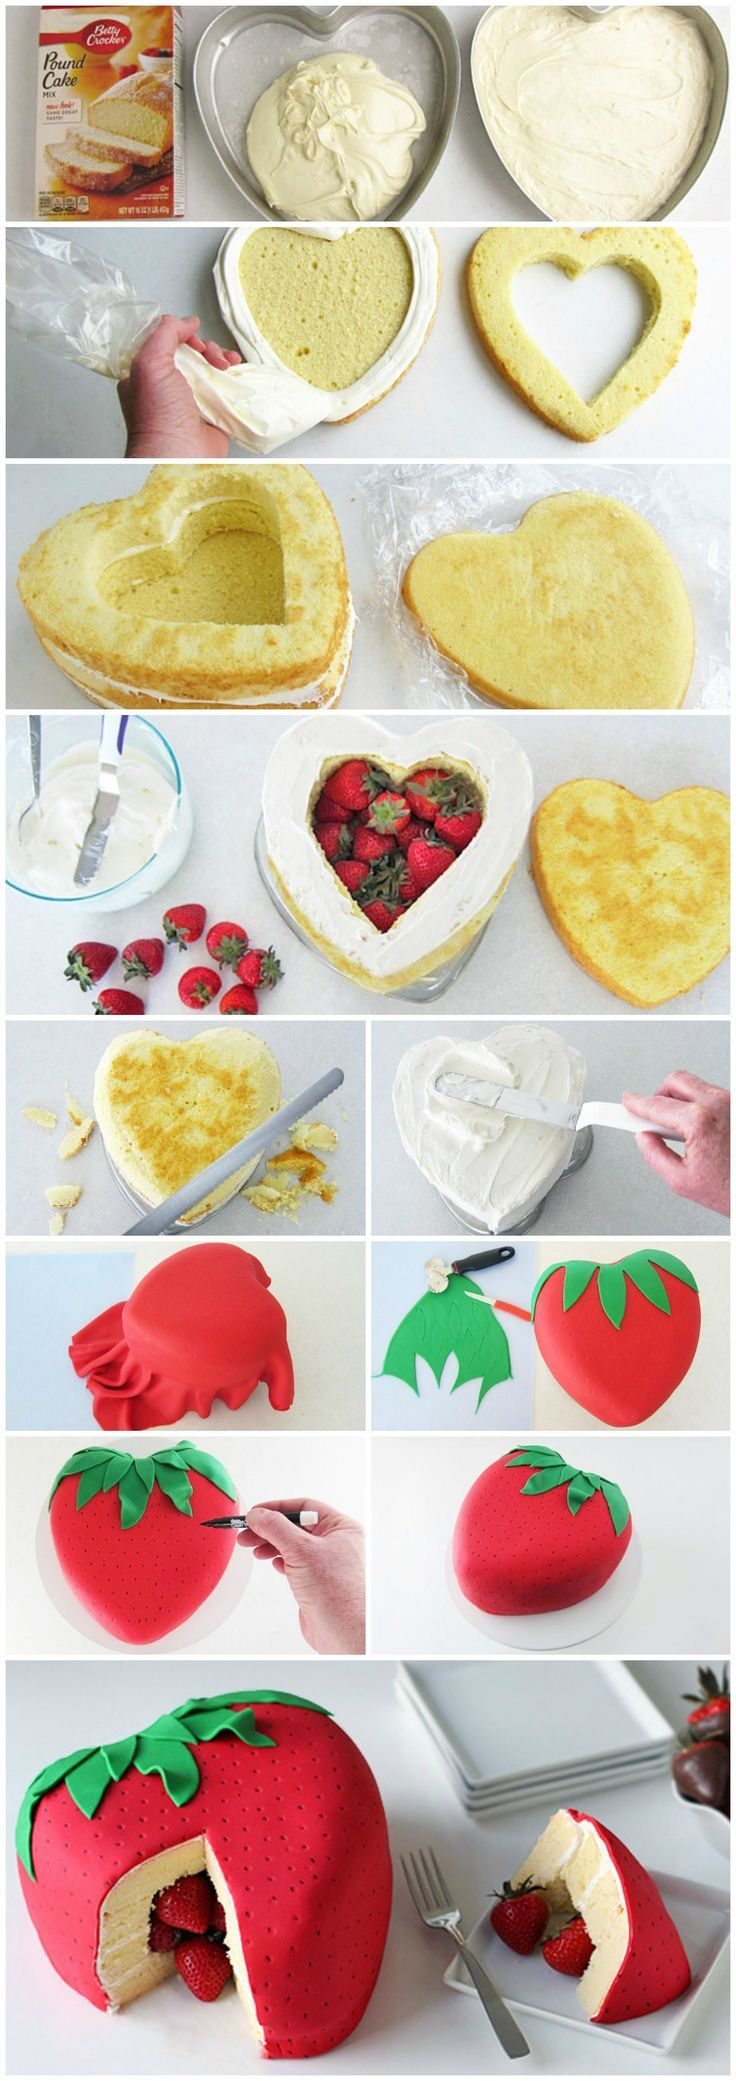 Strawberry Surprise Cake!! I think I'd core the strawberries first before putting them in the cake.: